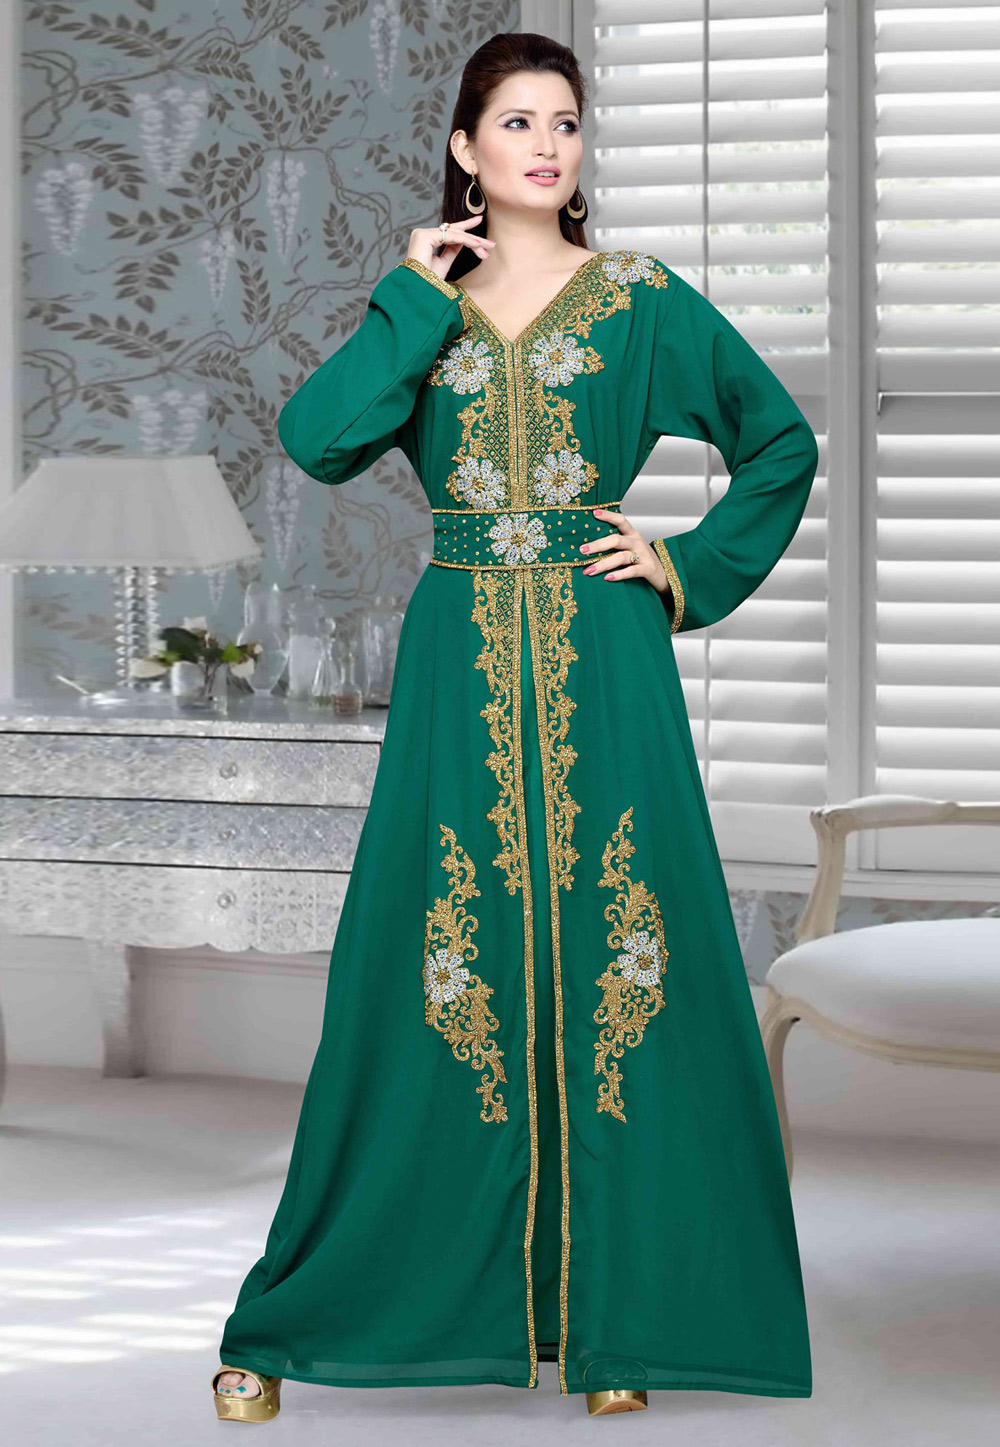 Green Faux Georgette Embroidered Readymade Kaftan 194723